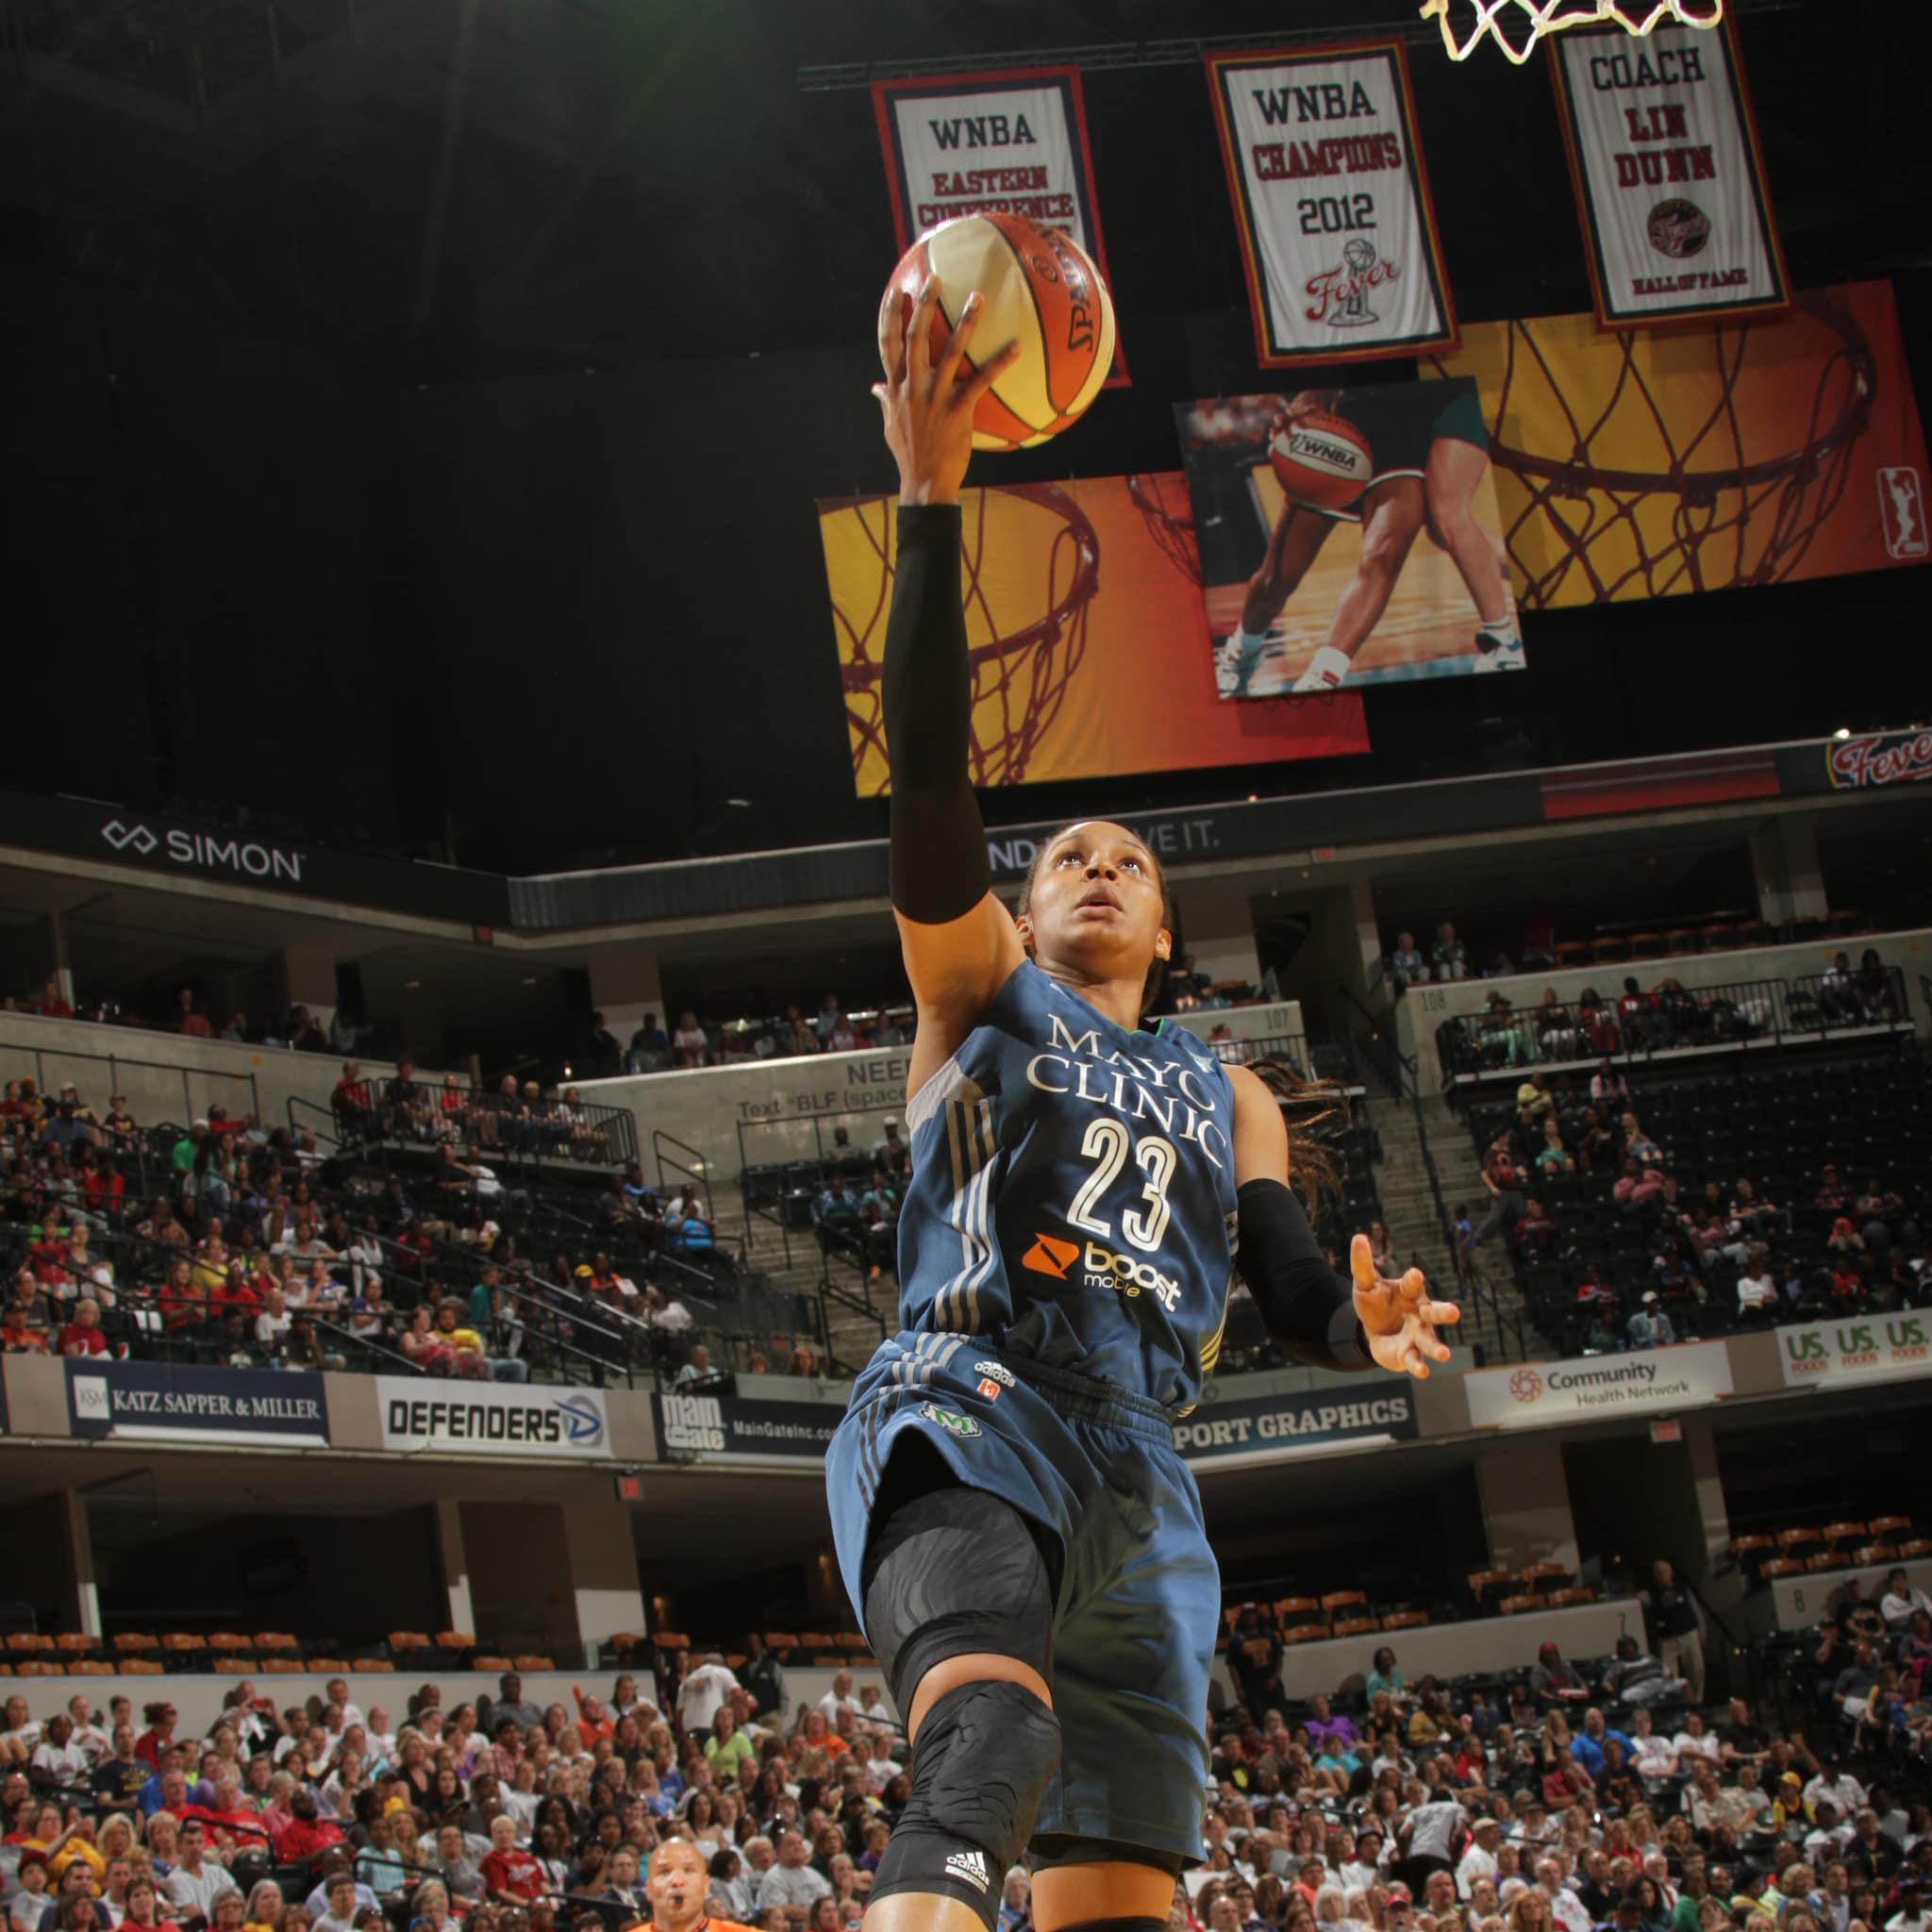 Lynx forward Maya Moore had a solid all-around game against the Fever, scoring 16 points to go with 10 rebounds, three assists and three steals.